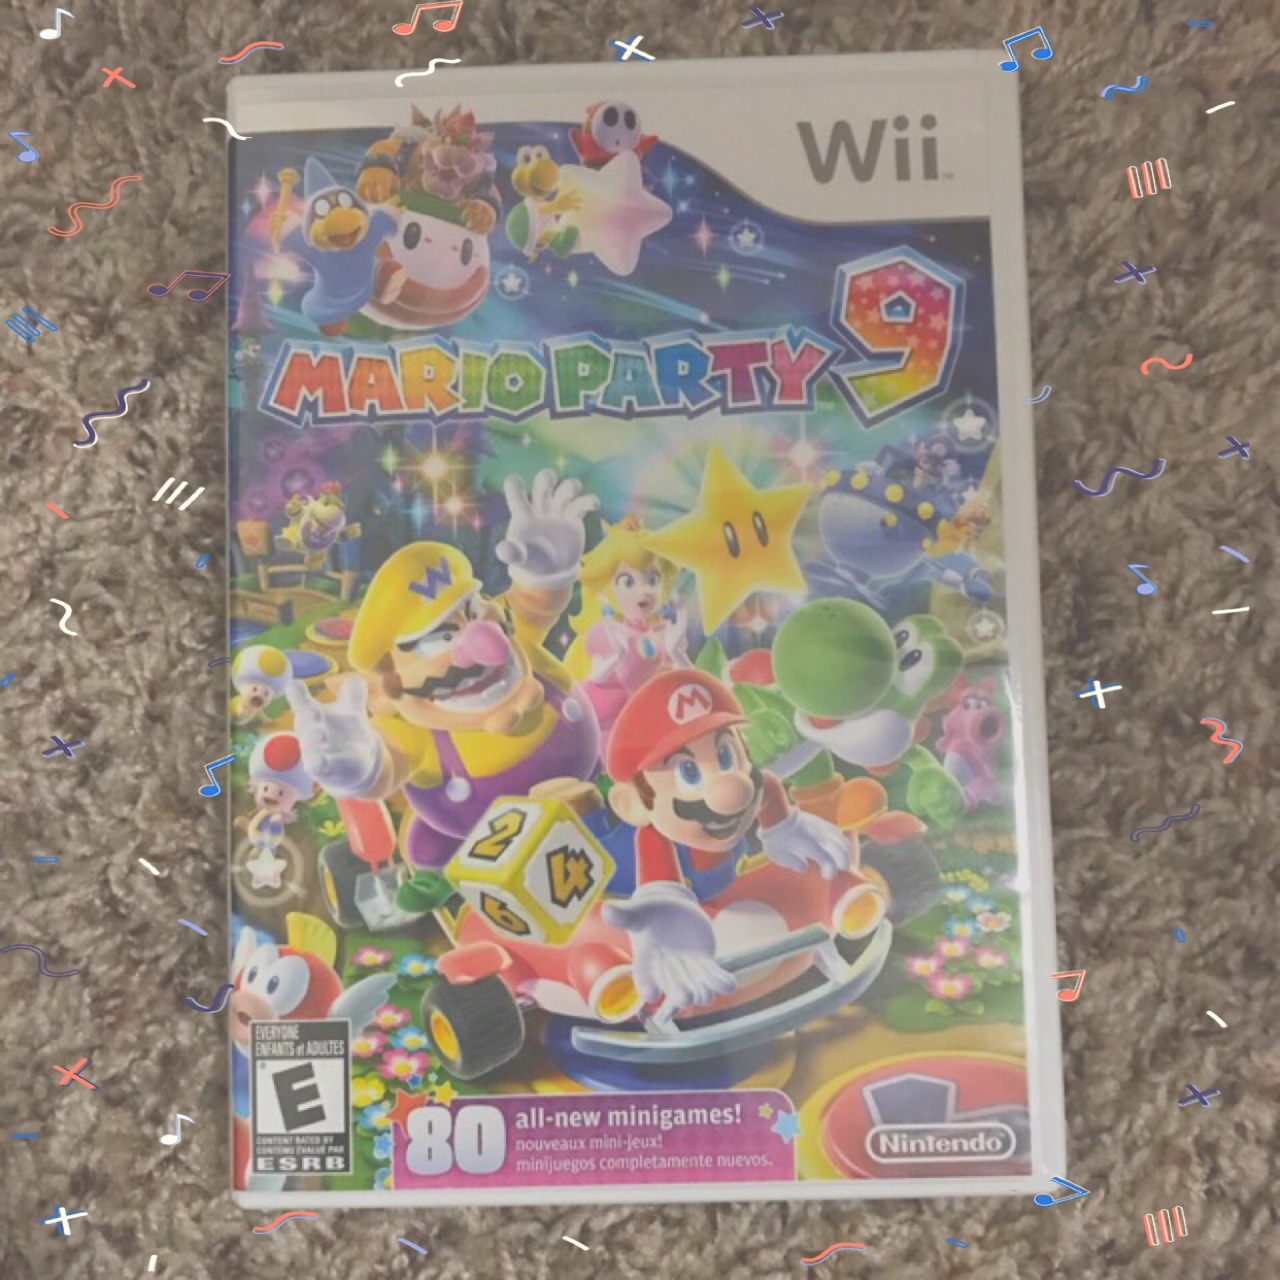 b7d88138a Mario Party 9 for the Wii in perfect... - Depop